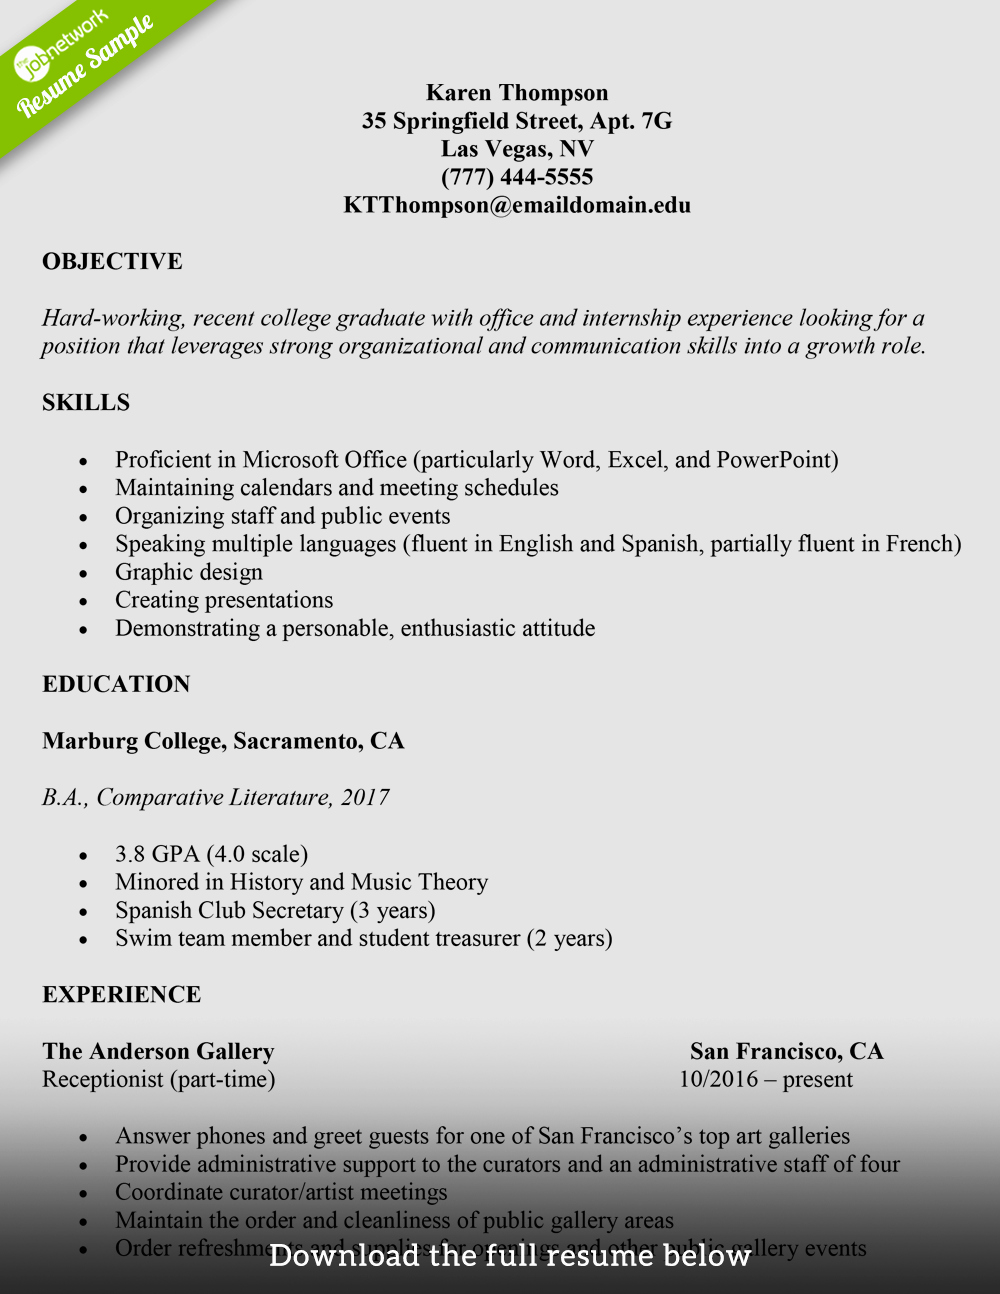 Resumes for Recent College Graduates Elegant How to Write A College Student Resume with Examples